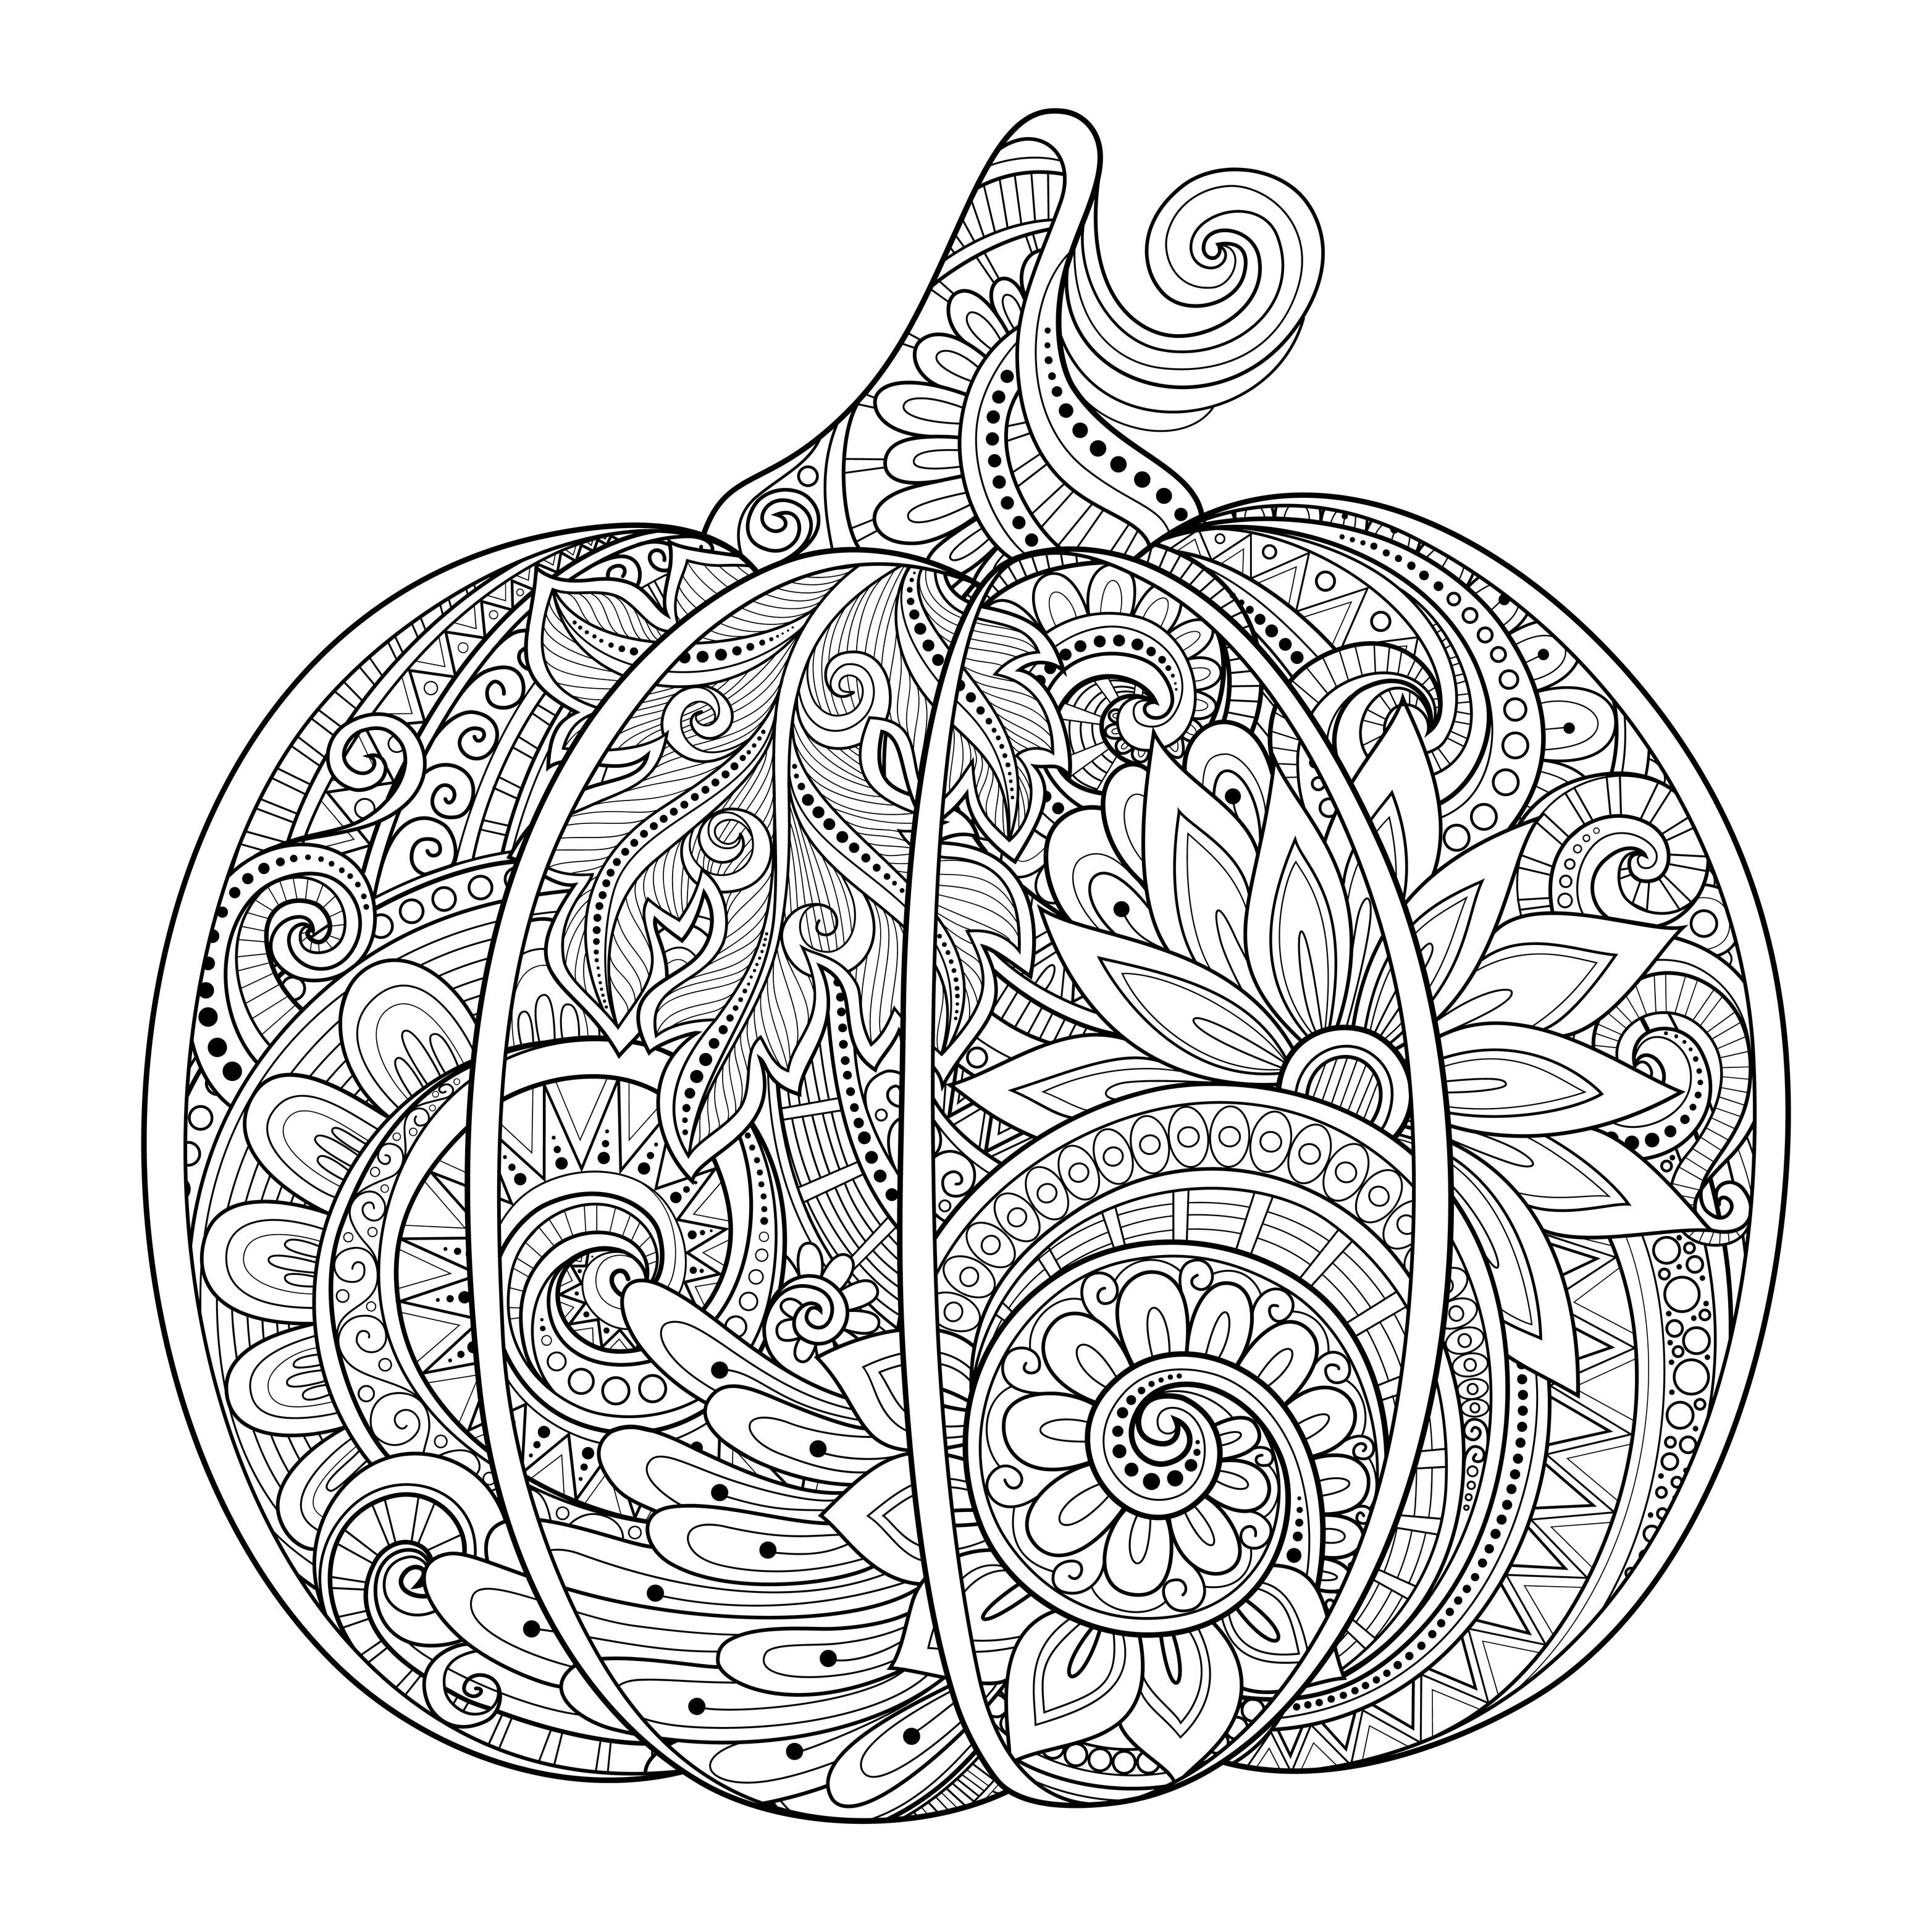 Printable coloring pages pumpkins - Free Coloring Page Coloring Halloween Pumpkin Zentangle Source 123rf Irinarivoruchko